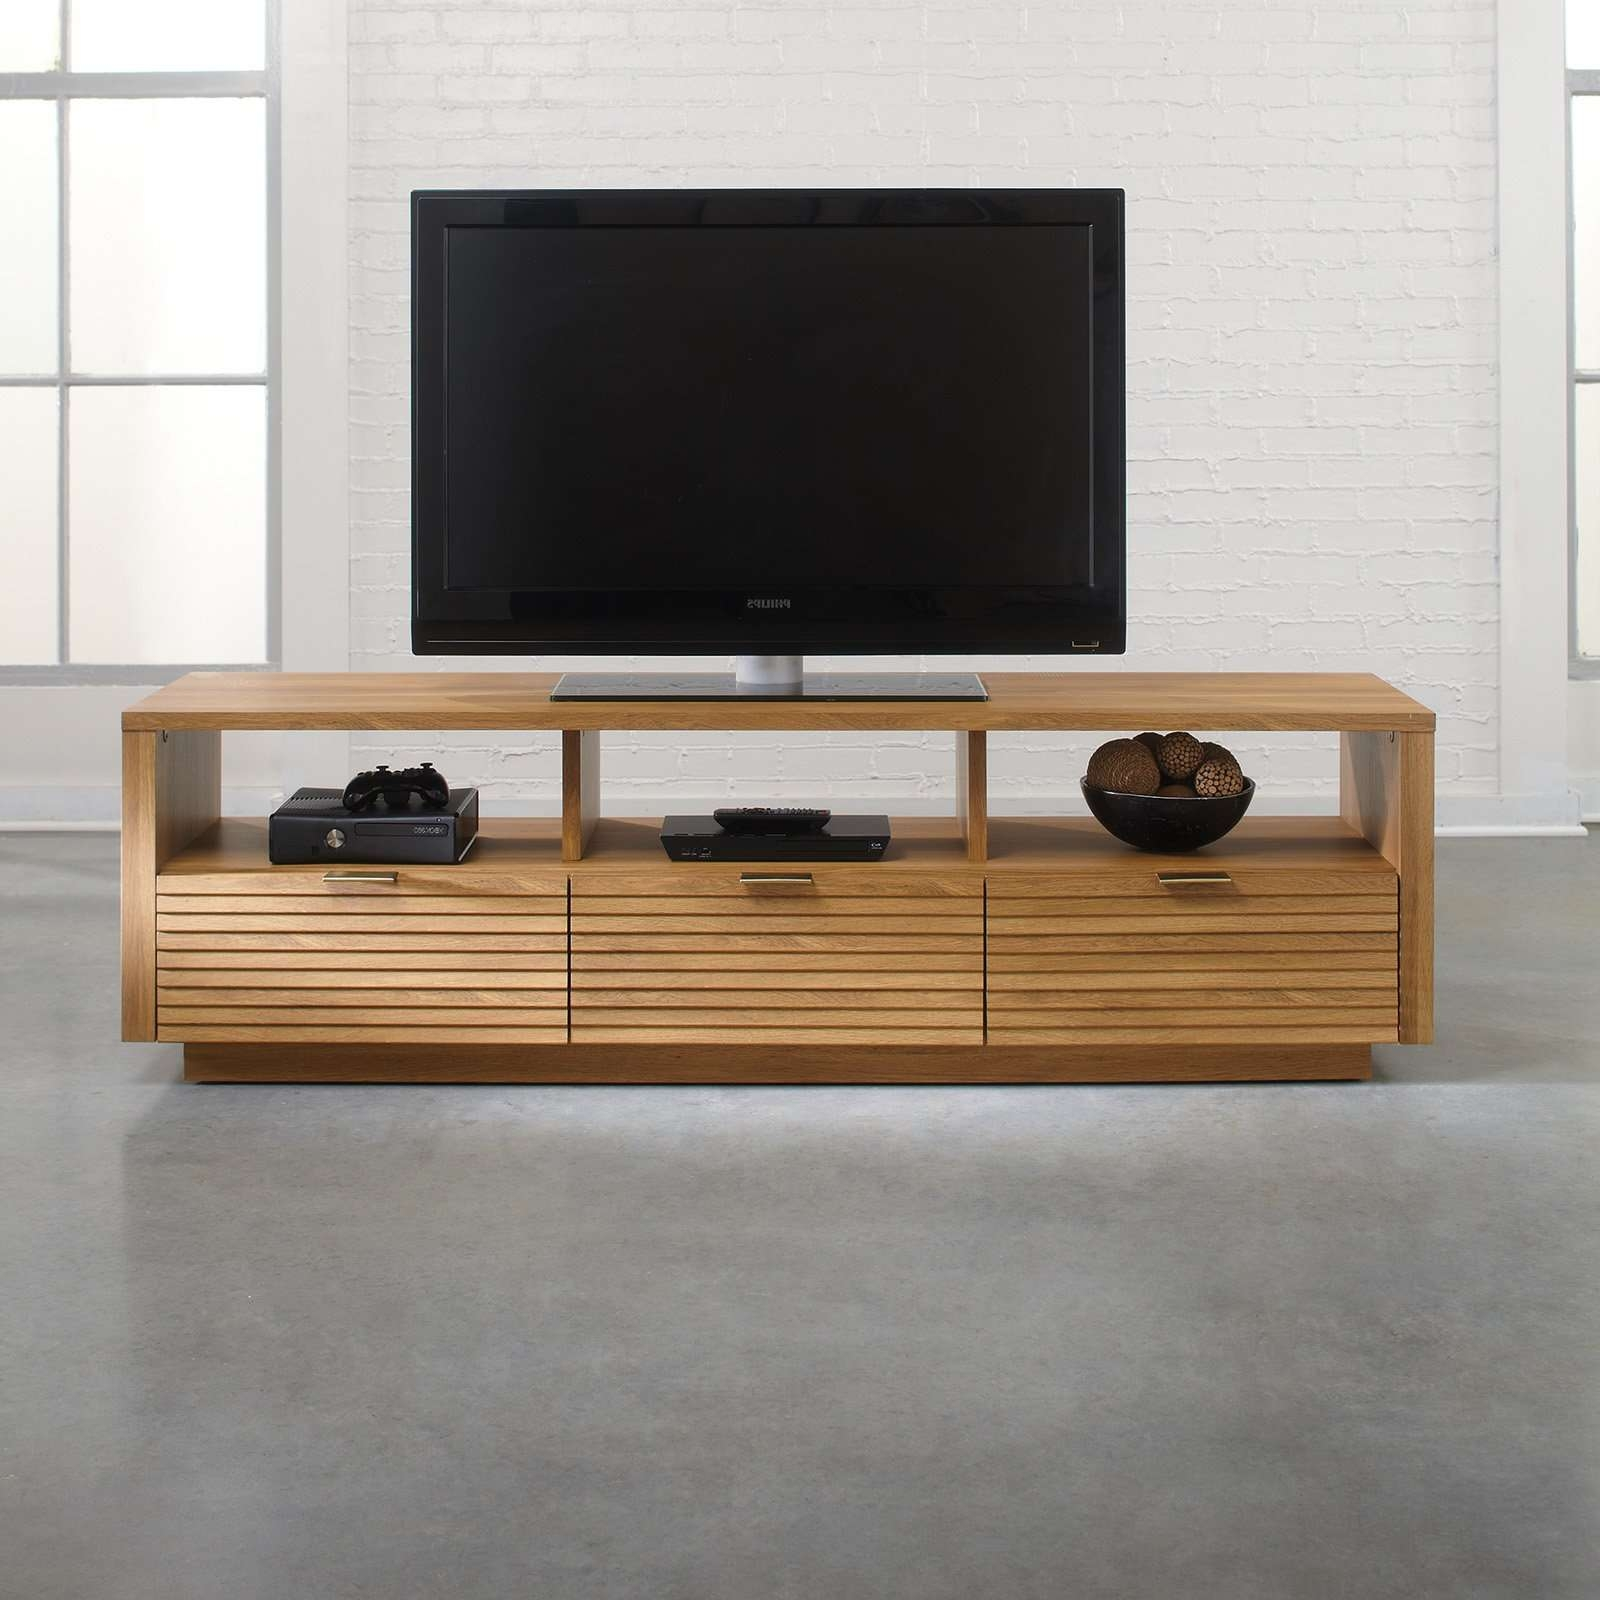 Sauder Soft Modern Entertainment Credenza – Pale Oak | Hayneedle In Contemporary Oak Tv Stands (View 9 of 15)